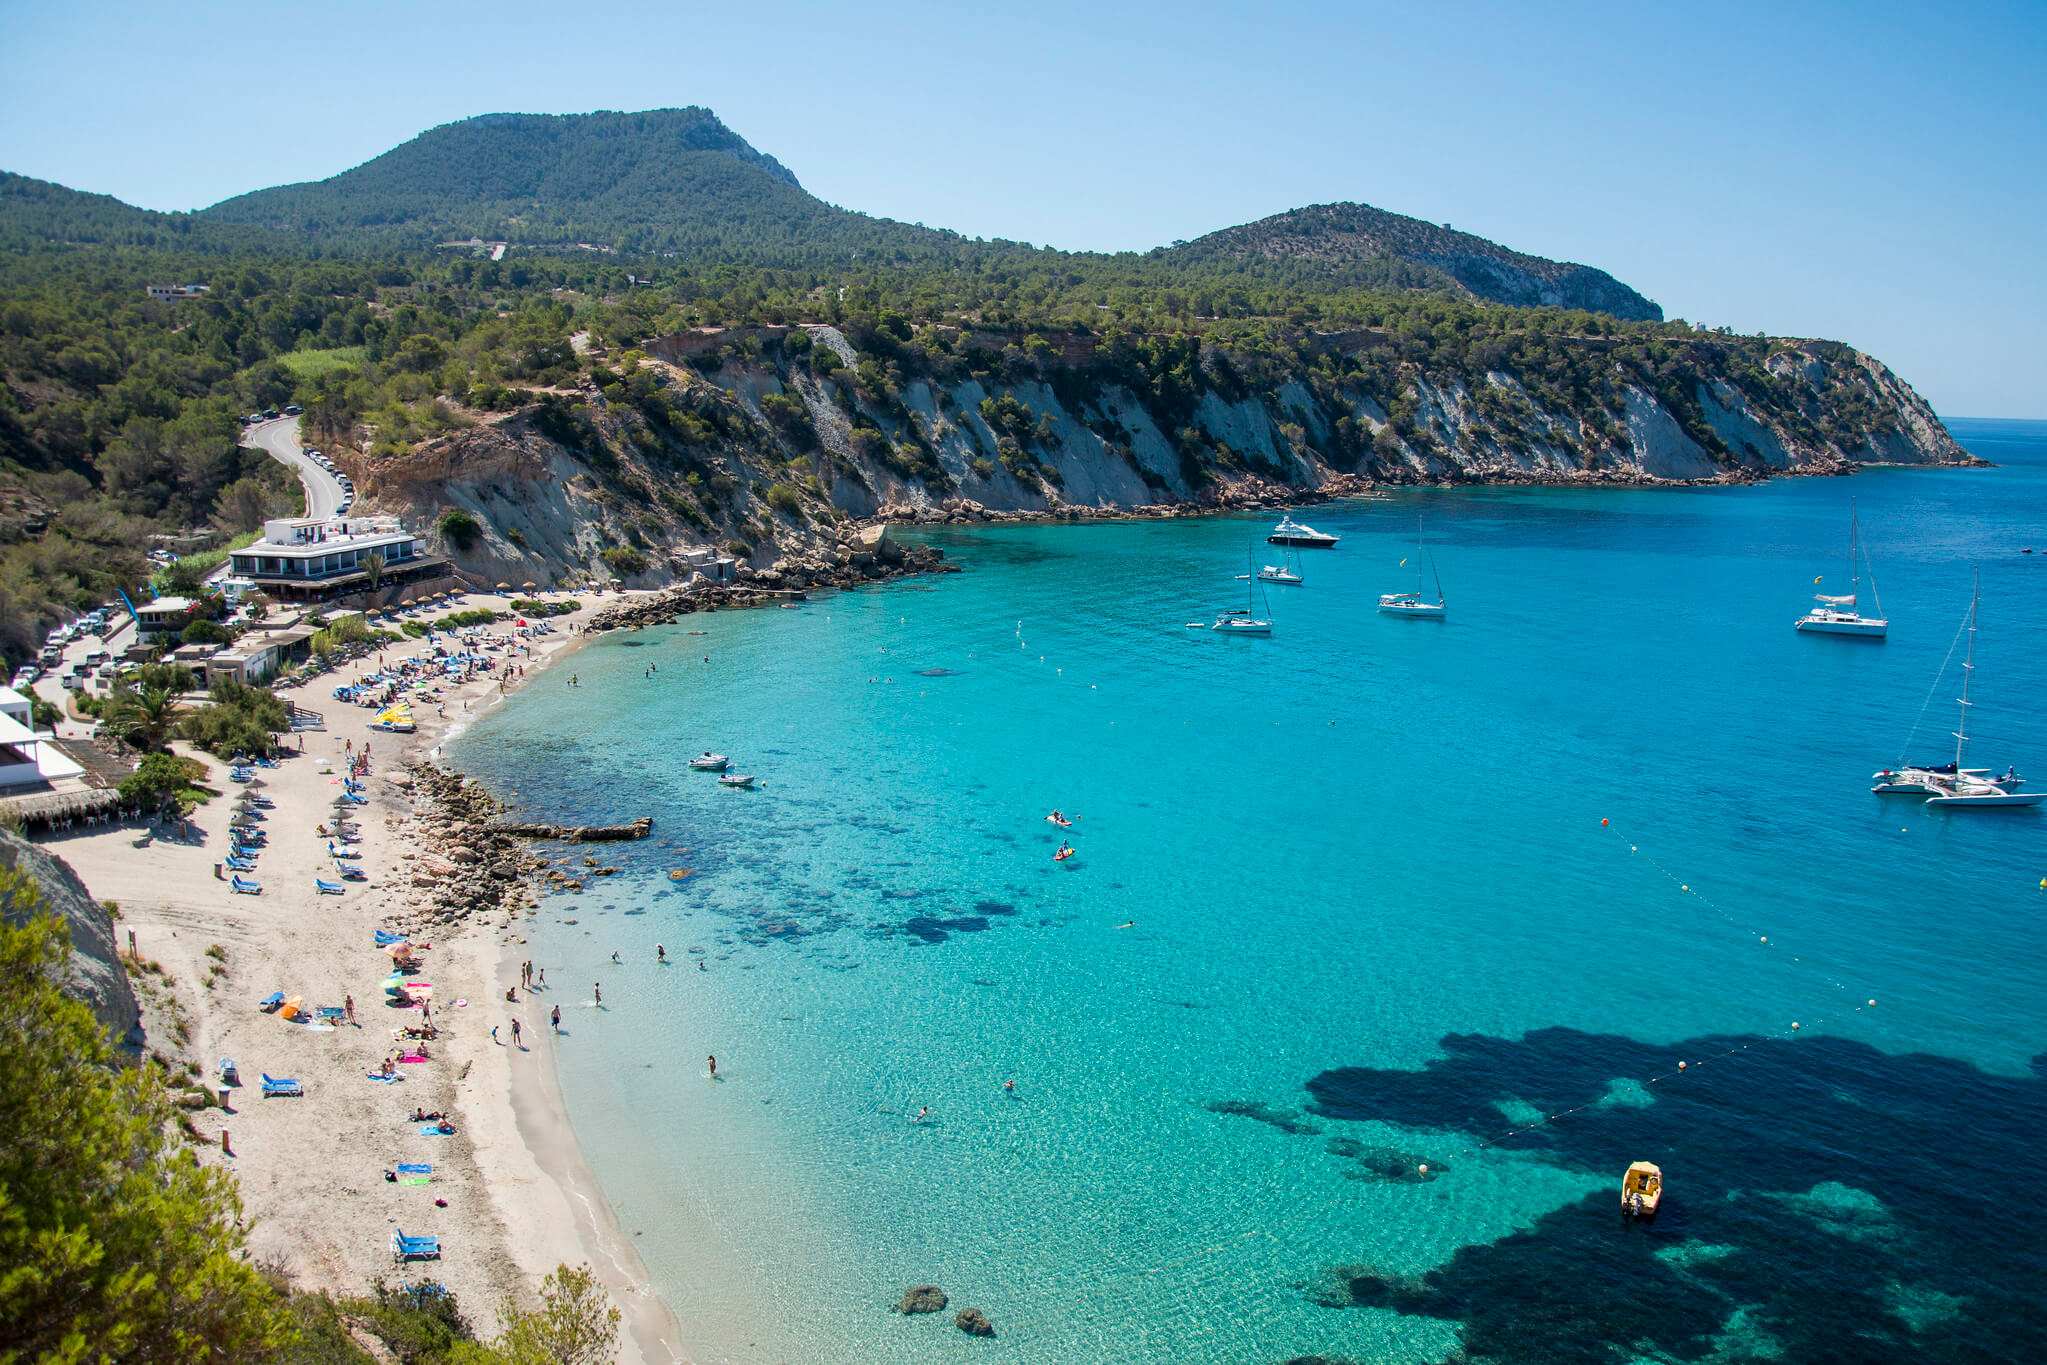 https://www.white-ibiza.com/wp-content/uploads/2020/03/ibiza-beaches-cala-dhort-01.jpg